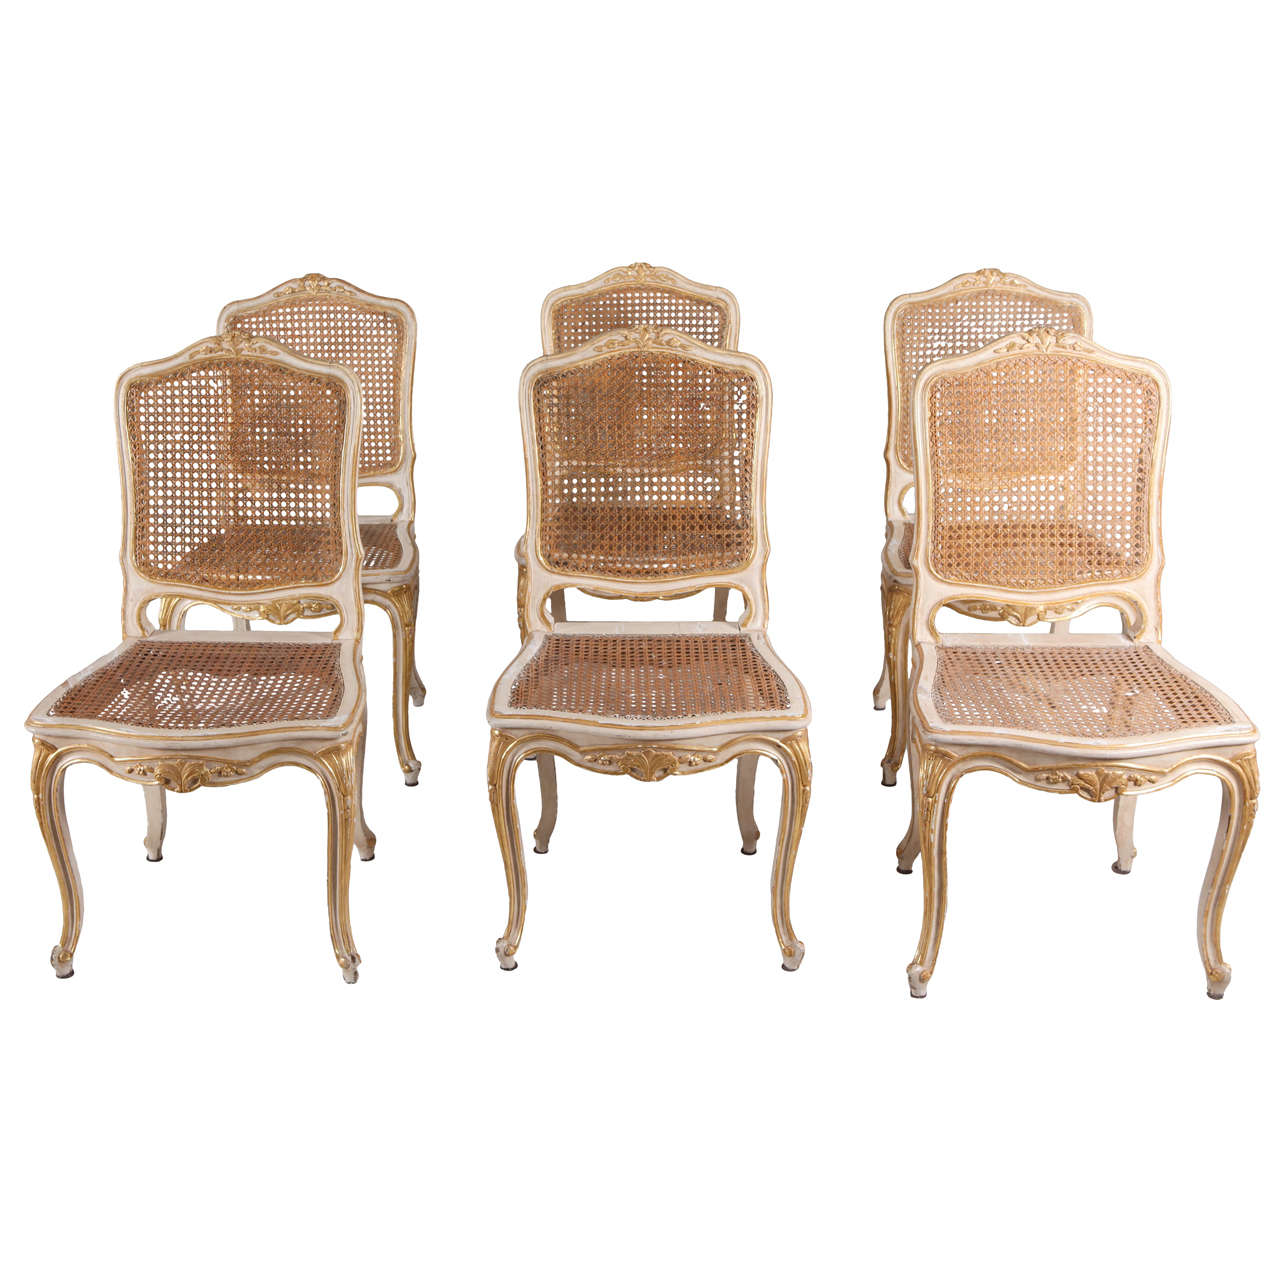 Set of Six French 19th Century Ivory Painted and Parcel-Gilt Chairs